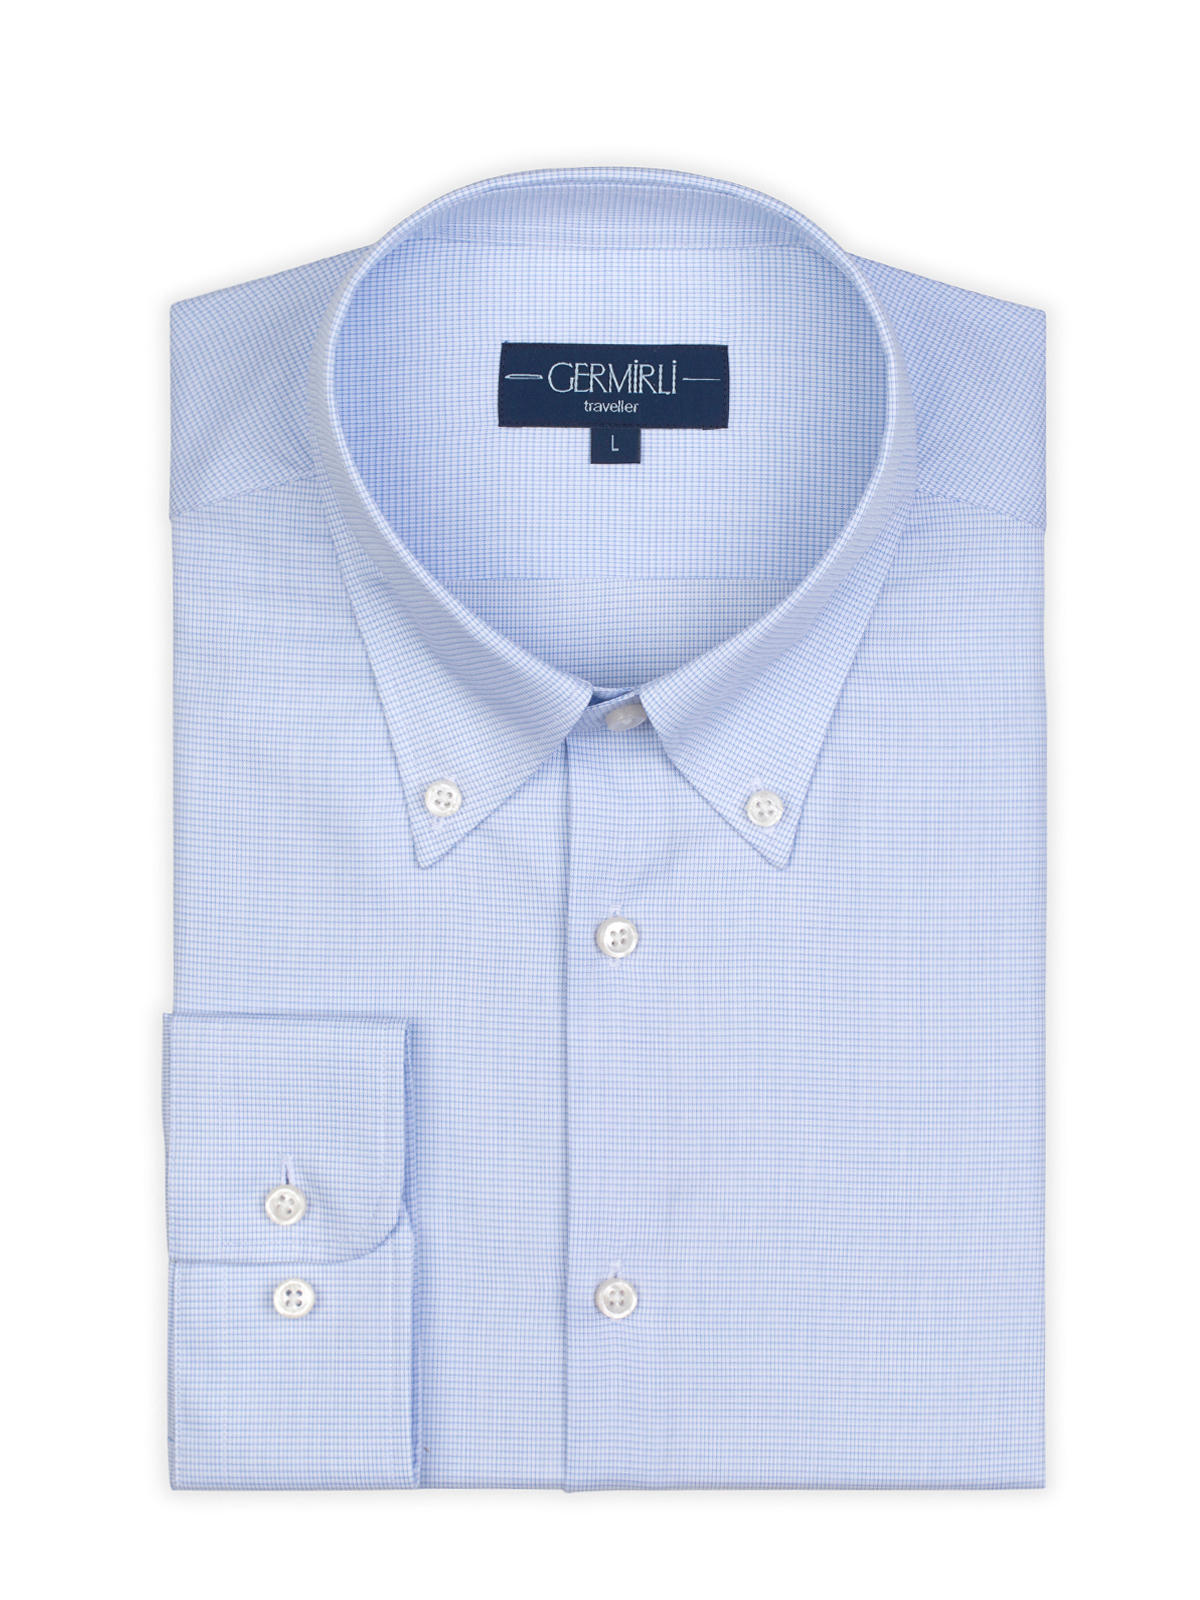 Germirli Non Iron Light Blue White Plaid Button Down Collar Tailor Fit Zero 24 Shirt